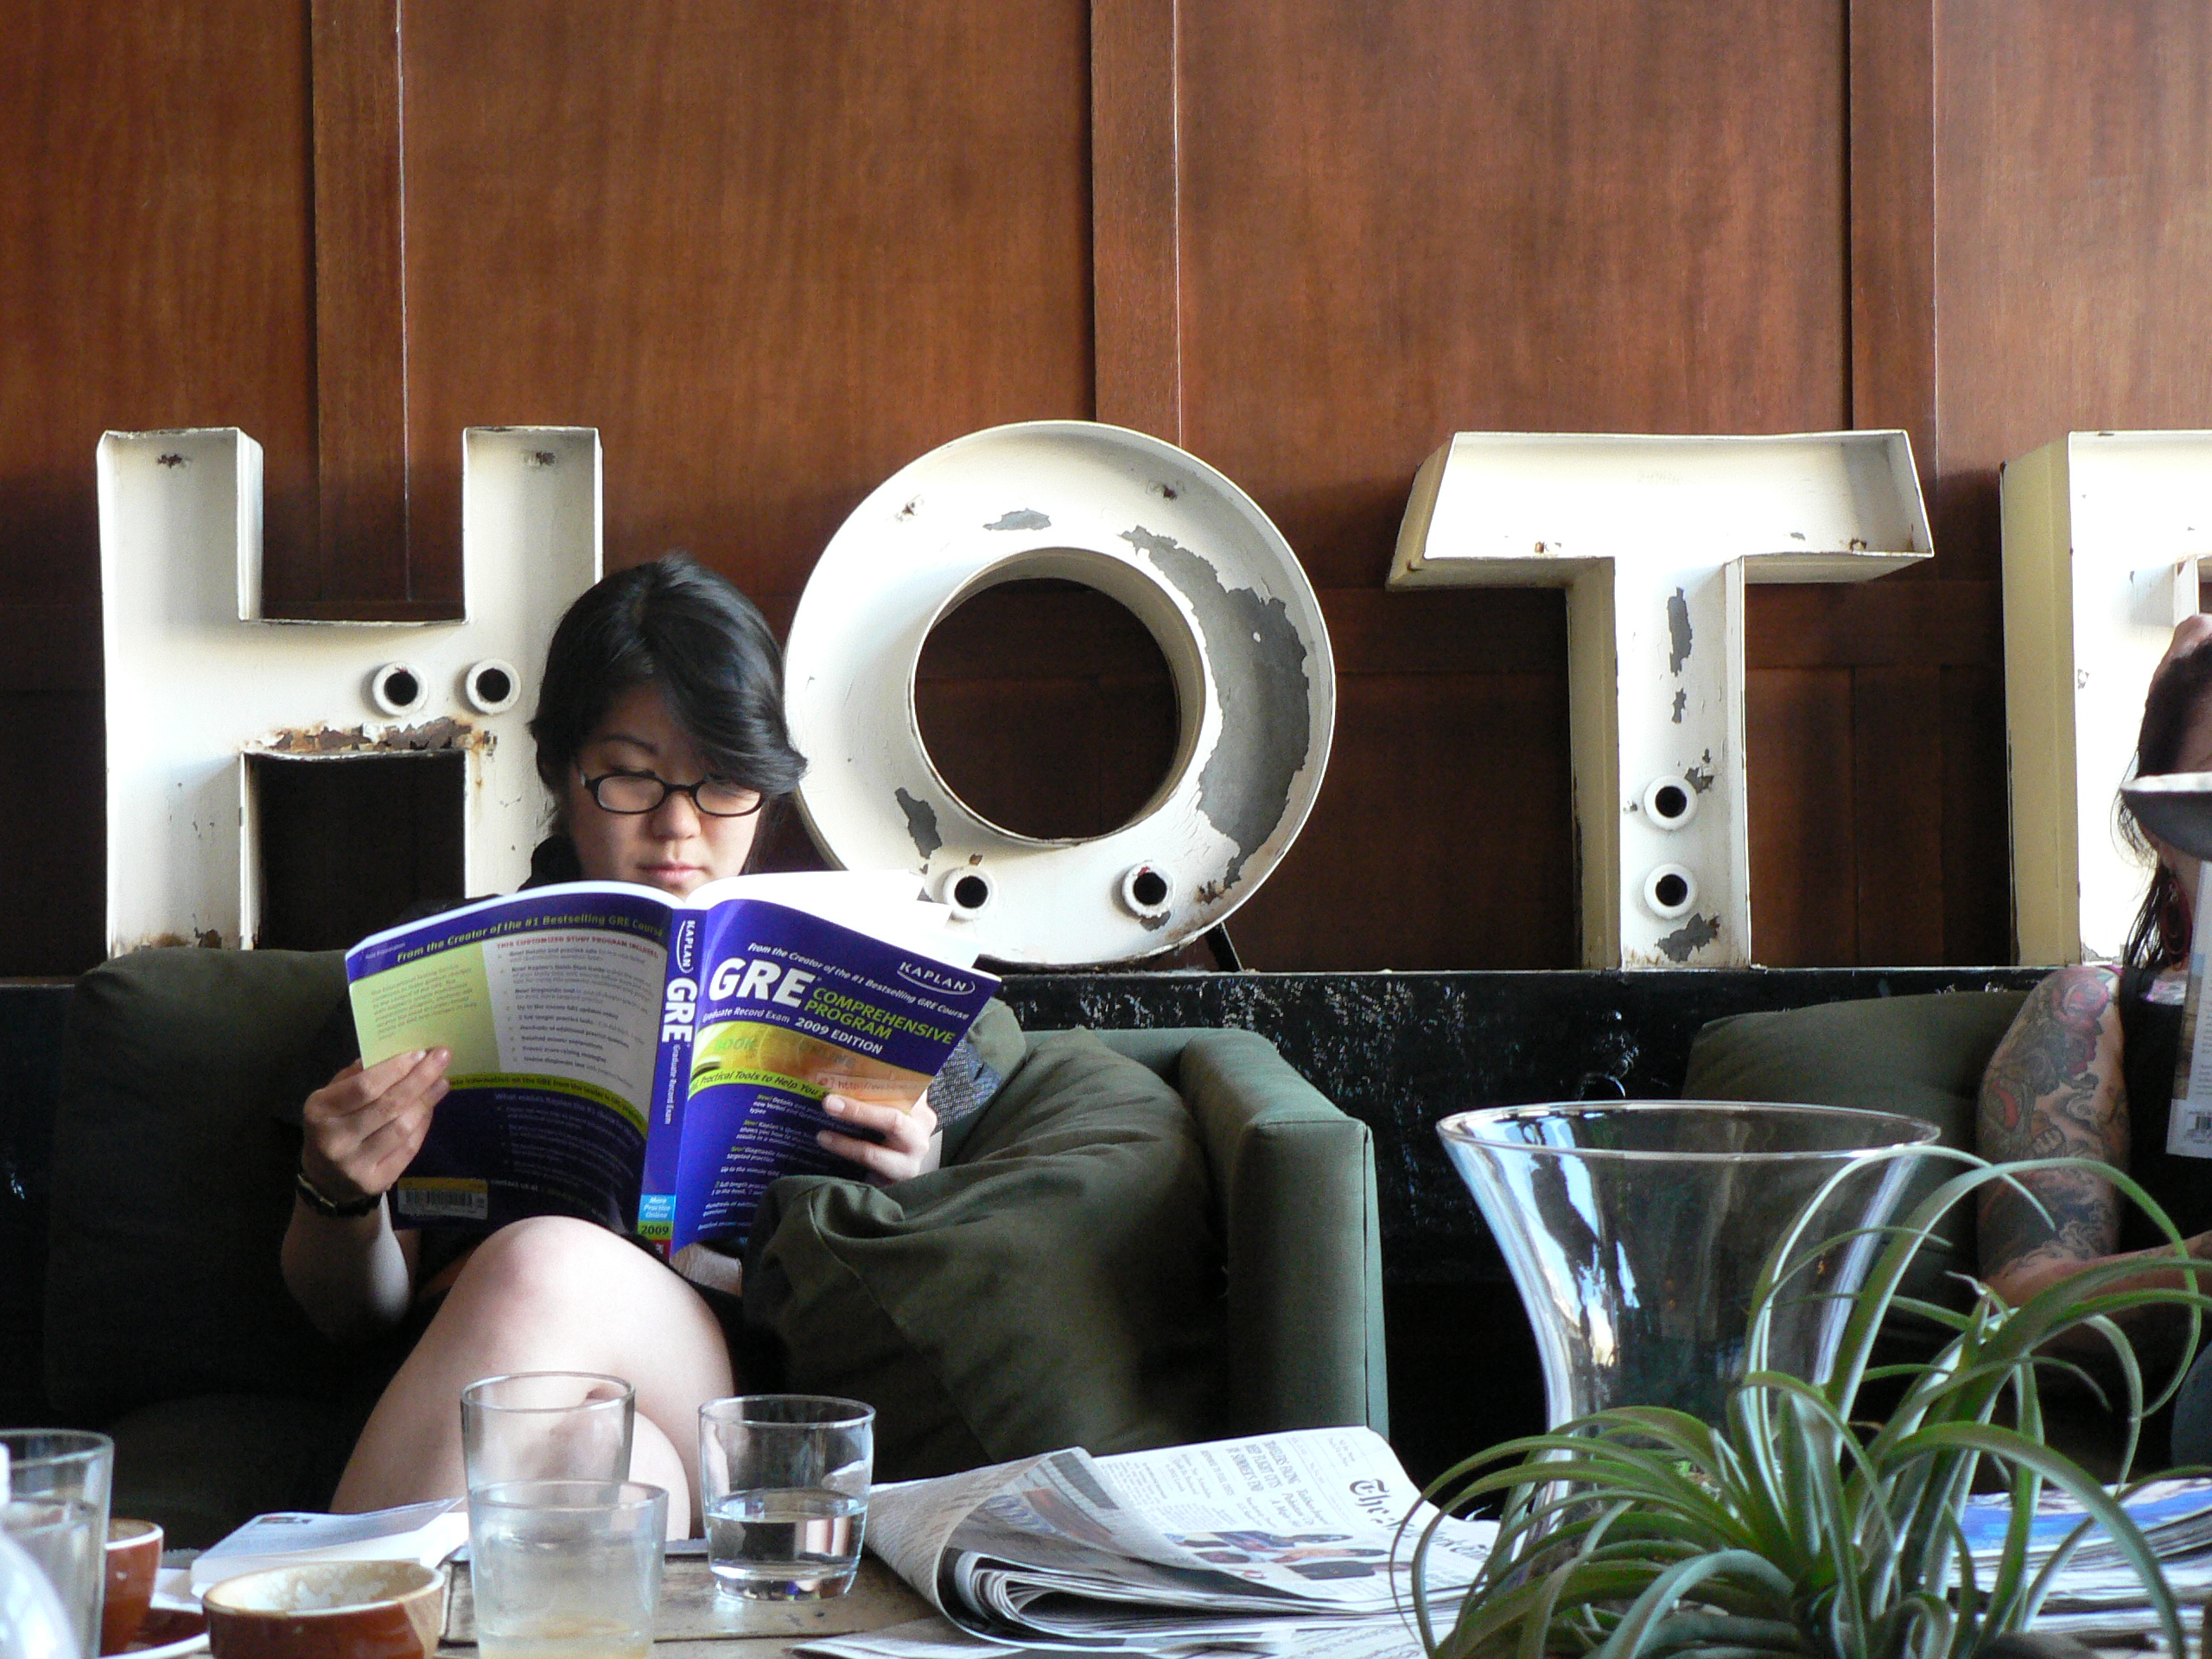 A visitor prepares for college entrance exams in the lobby of Portland's Ace Hotel